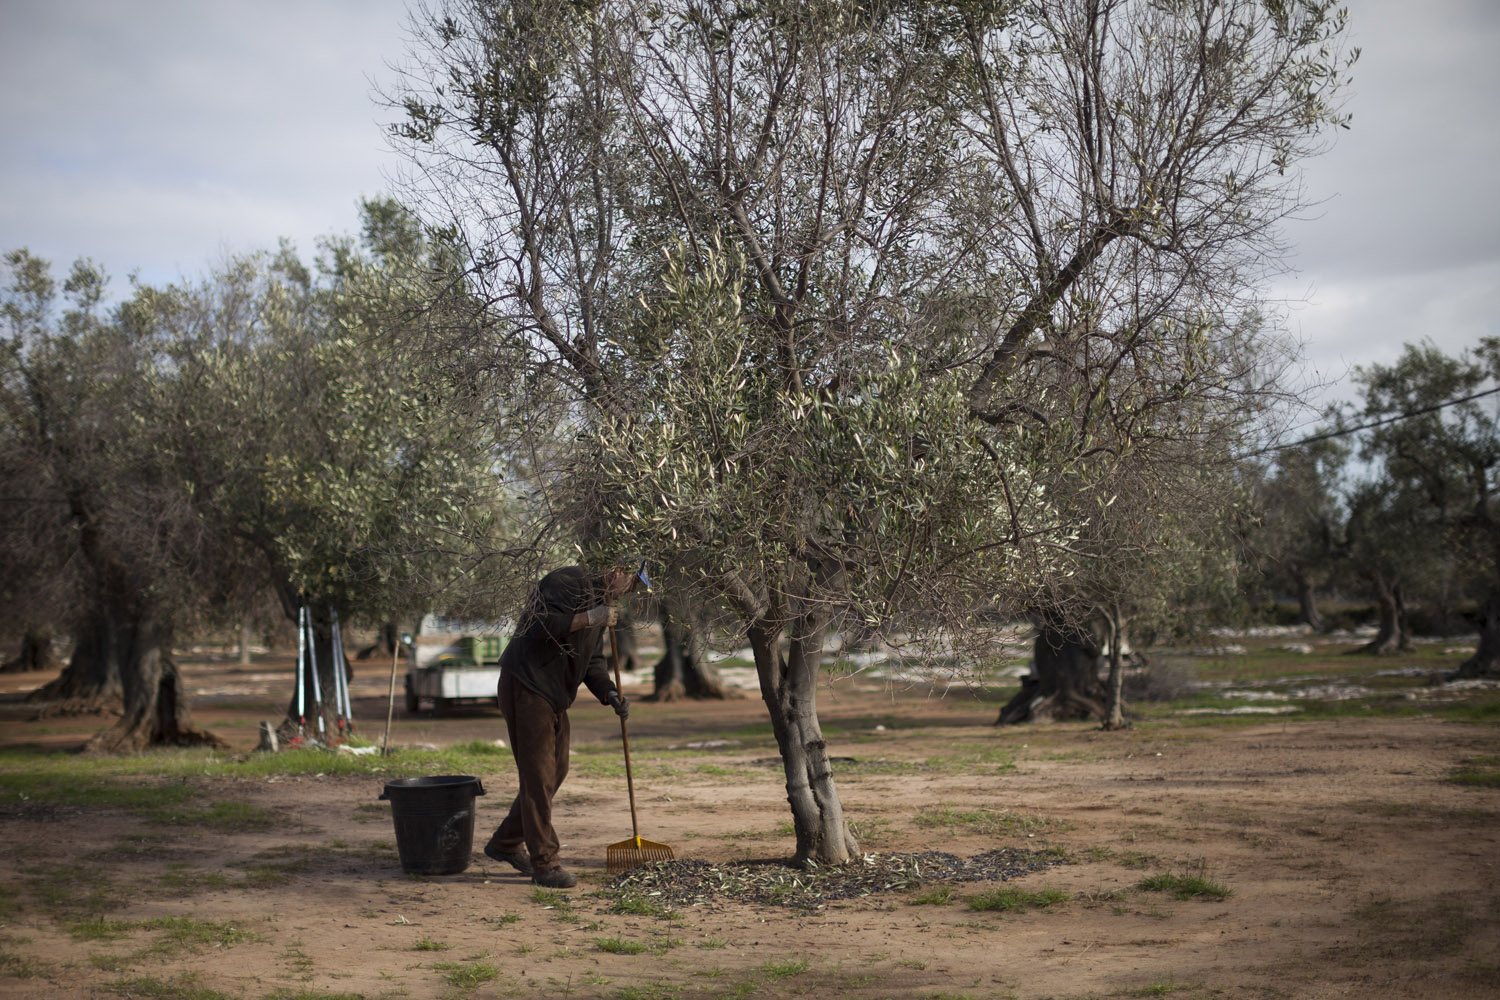 Daniele Casto harvesting olives from the ground in Salento. This practice, which produces low-quality oil and often involves the use of herbicides, has impoverished the soil and therefore weakened the olive trees, literally preparing the ground for the spread of an infection. (2017)